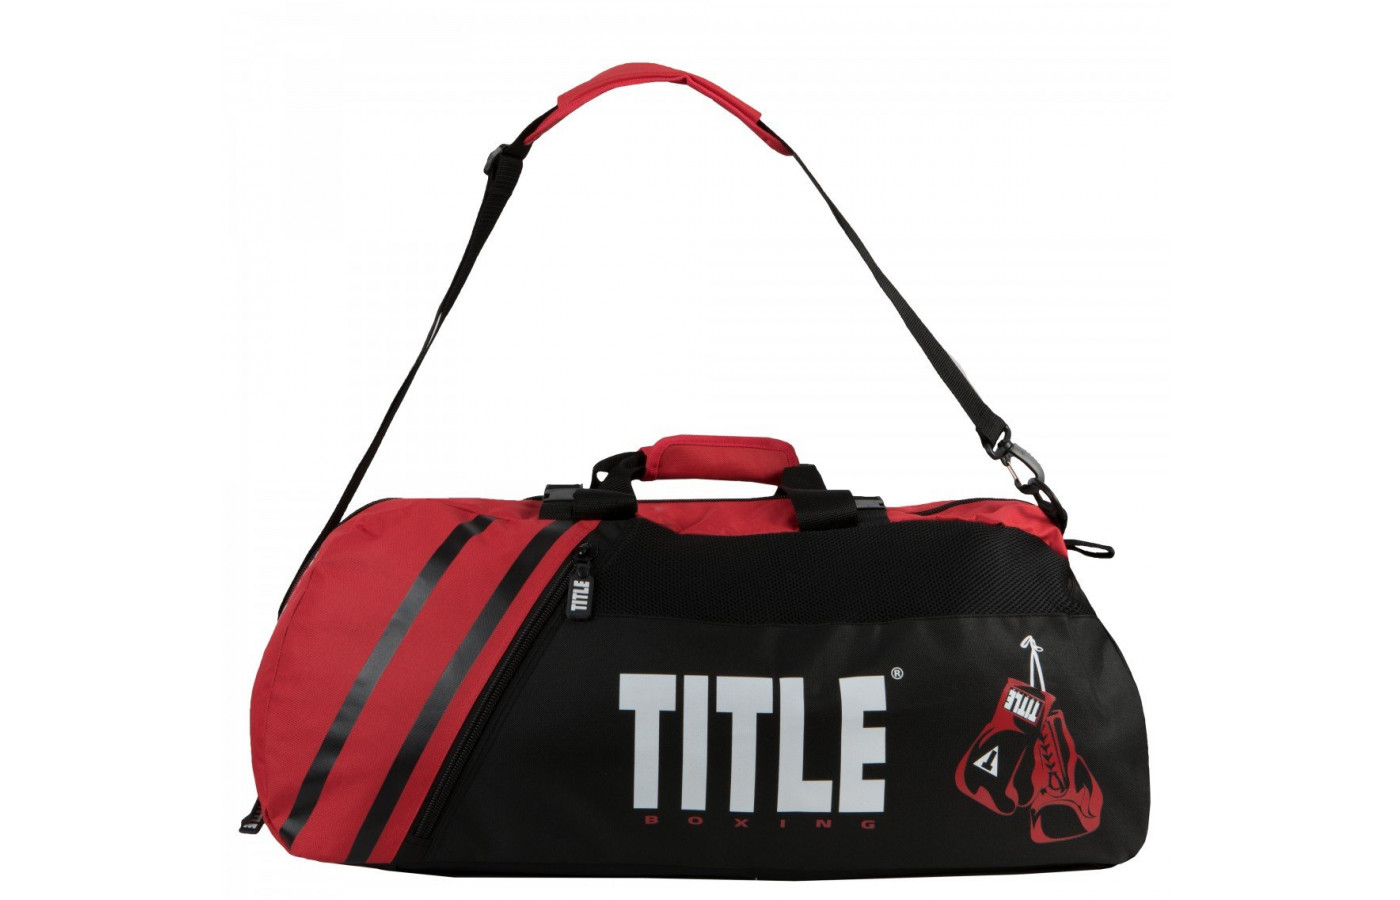 title world champion sport bag handle up